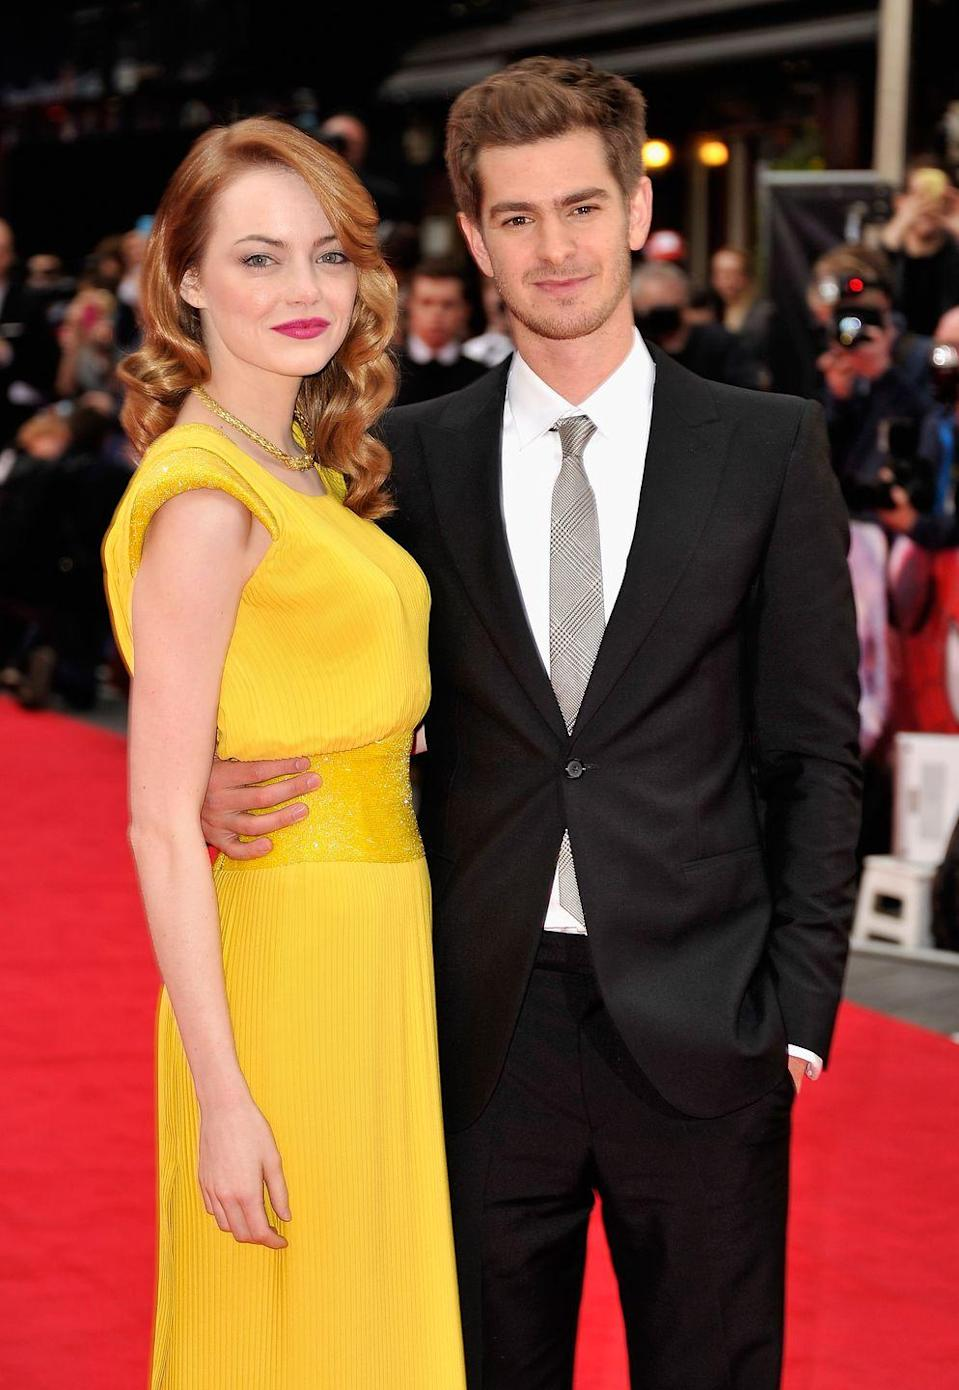 """<p>Emma Stone and Andrew Garfield became the real-life Gwen Stacy and Peter Parker when they sparked dating rumors on the set of The Amazing Spider-Man. Both of them were in relationships at the time, but those ended as promotion for the film began. (Just in time for the press to start asking questions...) </p><p>'It was like I woke up when she came in,' Andrew told <a href=""""https://www.teenvogue.com/gallery/emma-stone-andrew-garfield-teen-vogue-photos#2"""" rel=""""nofollow noopener"""" target=""""_blank"""" data-ylk=""""slk:Teen Vogue"""" class=""""link rapid-noclick-resp"""">Teen Vogue</a> about the first time he saw Emma. 'She was the last person to screen-test…And then she came in, and it was like diving into white-water rapids and having no desire to hang on to the side. Throughout shooting, it was wild and exciting. I couldn't help but try to stay with her, keep pace with her, and not let her get away.'</p><p>To everyone's dismay, the couple broke up. They continued to be <a href=""""https://www.cosmopolitan.com/uk/entertainment/a49725/emma-stone-andrew-garfield-relationship-timeline/"""" rel=""""nofollow noopener"""" target=""""_blank"""" data-ylk=""""slk:very friendly exes"""" class=""""link rapid-noclick-resp"""">very friendly exes</a>, though.</p>"""